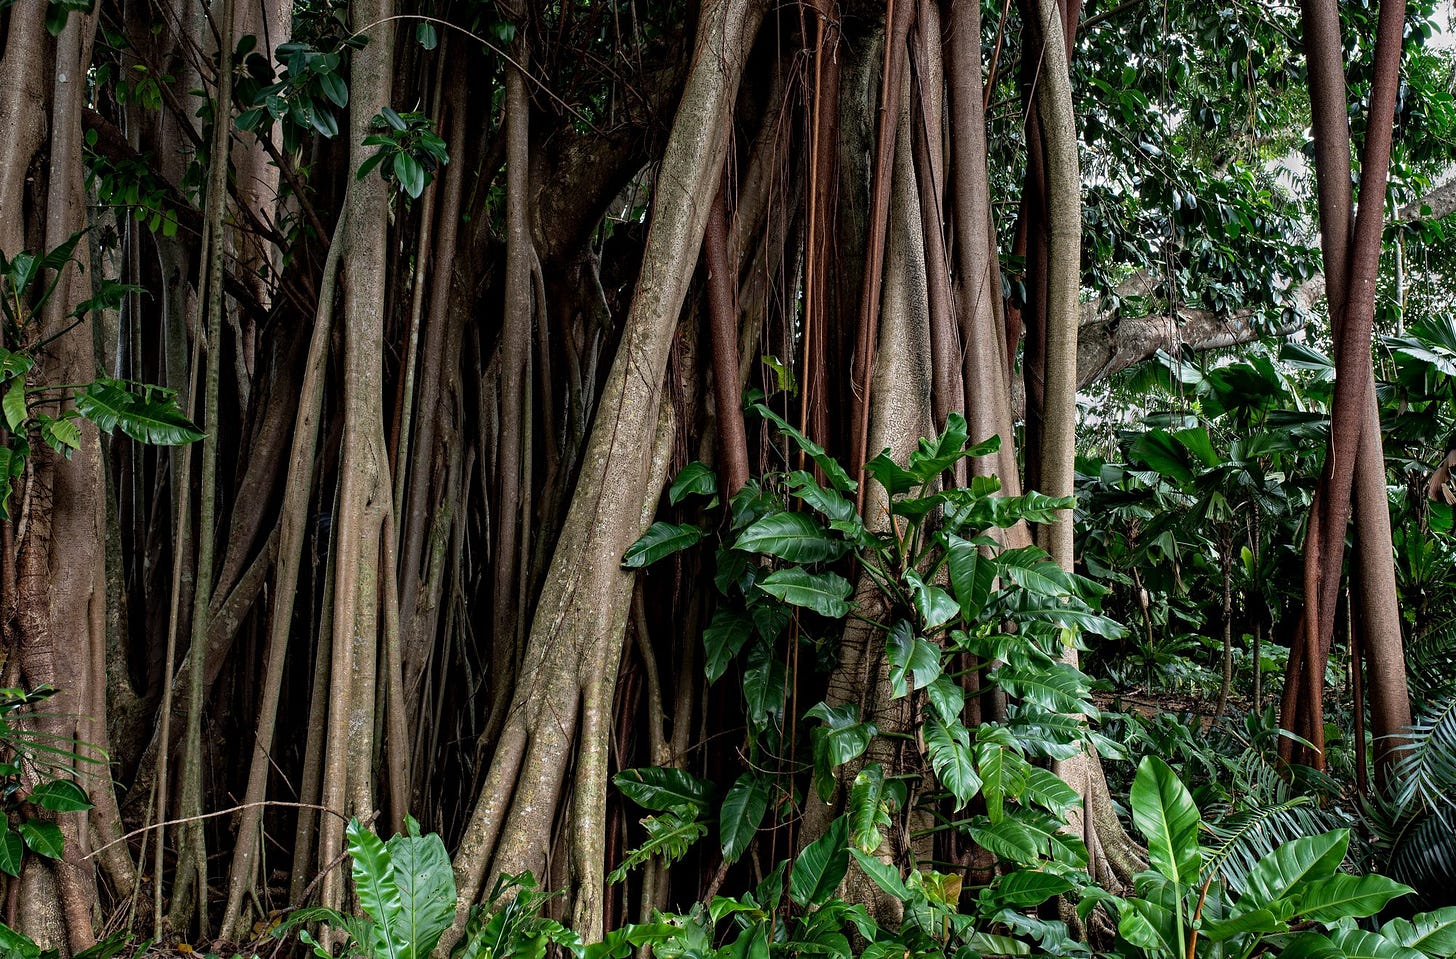 A Philodendron climbs up the trunks of a Rubber tree, Ficus elastica.